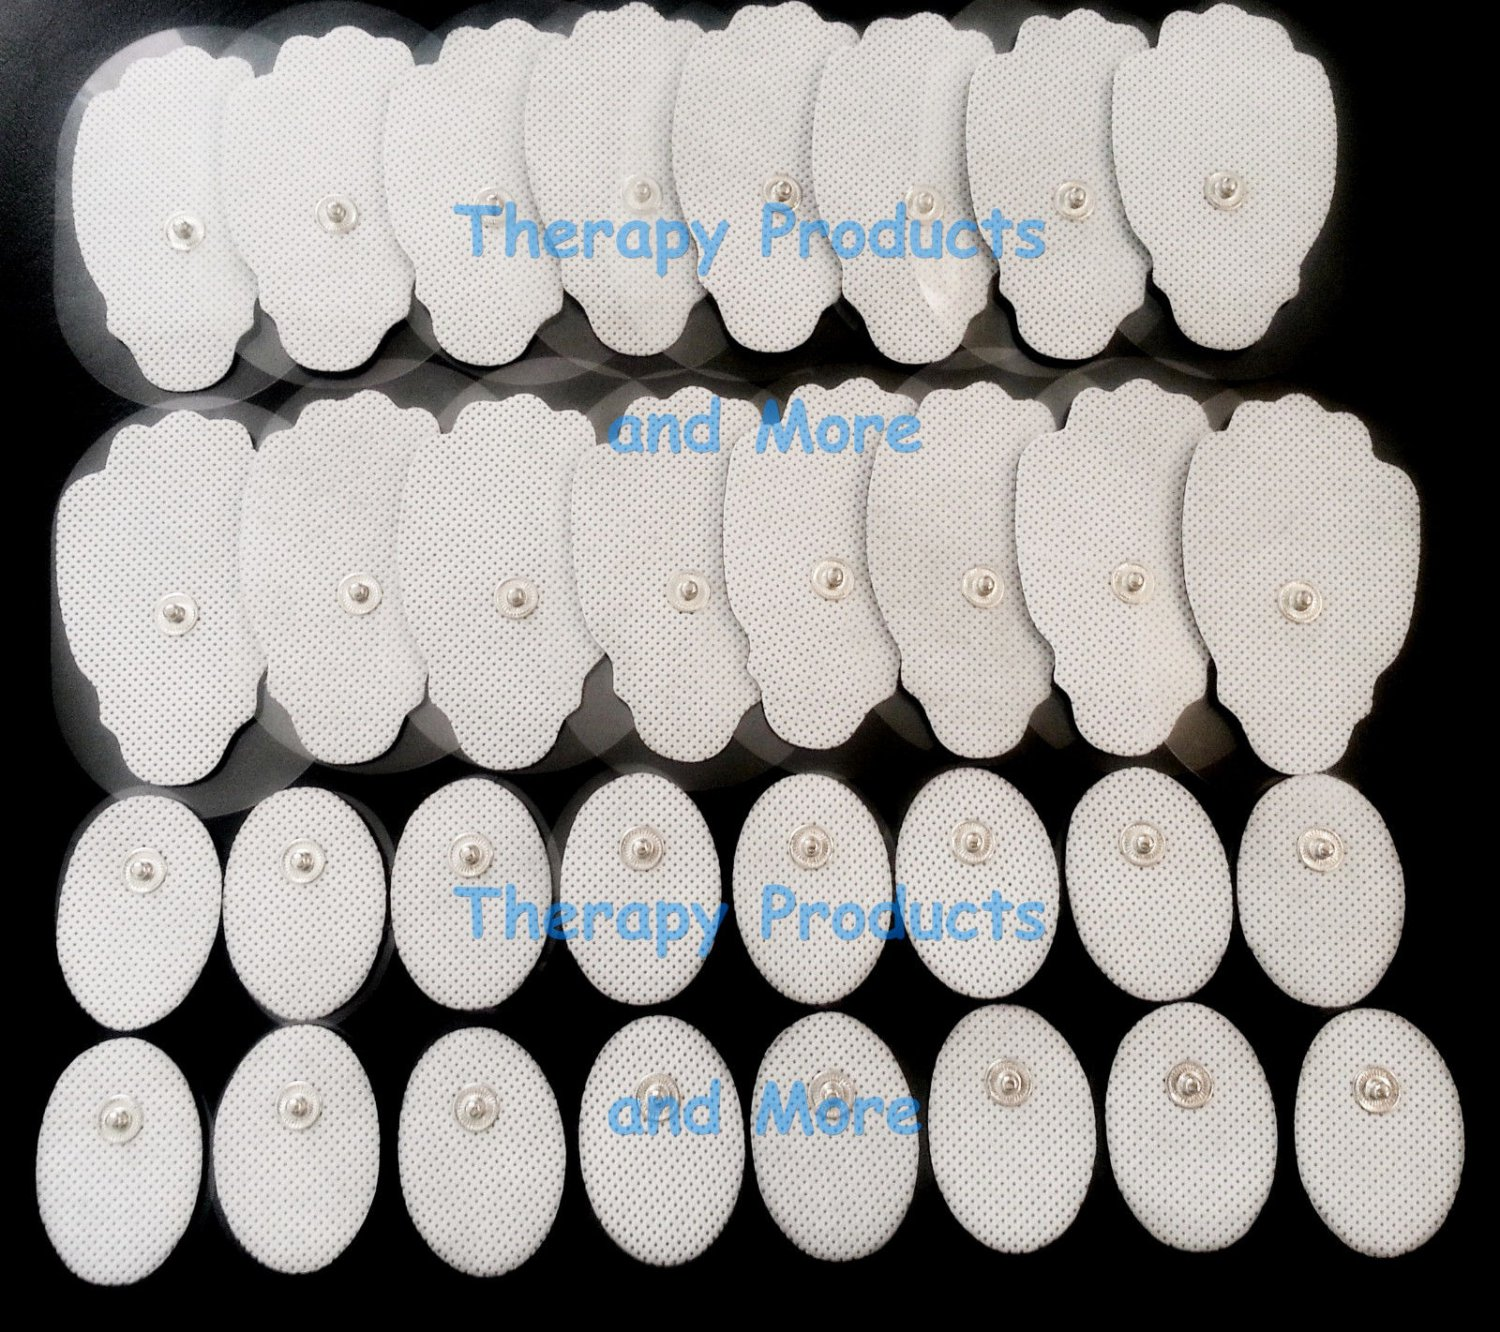 REPLACEMENT MASSAGE PADS (16 LG + 16 SM OVAL) FOR POPULAR DIGITAL MASSAGERS